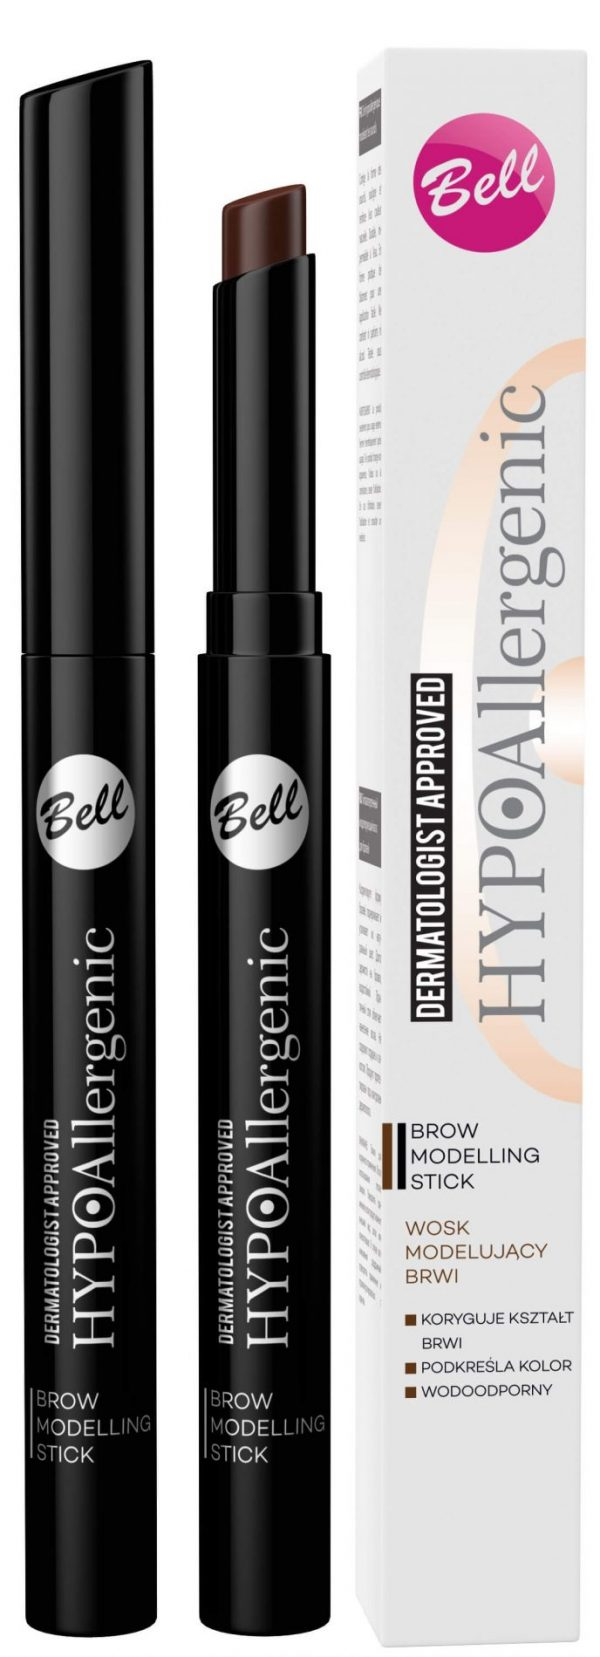 HYPOAllergenic Brow Modelling Stick 1